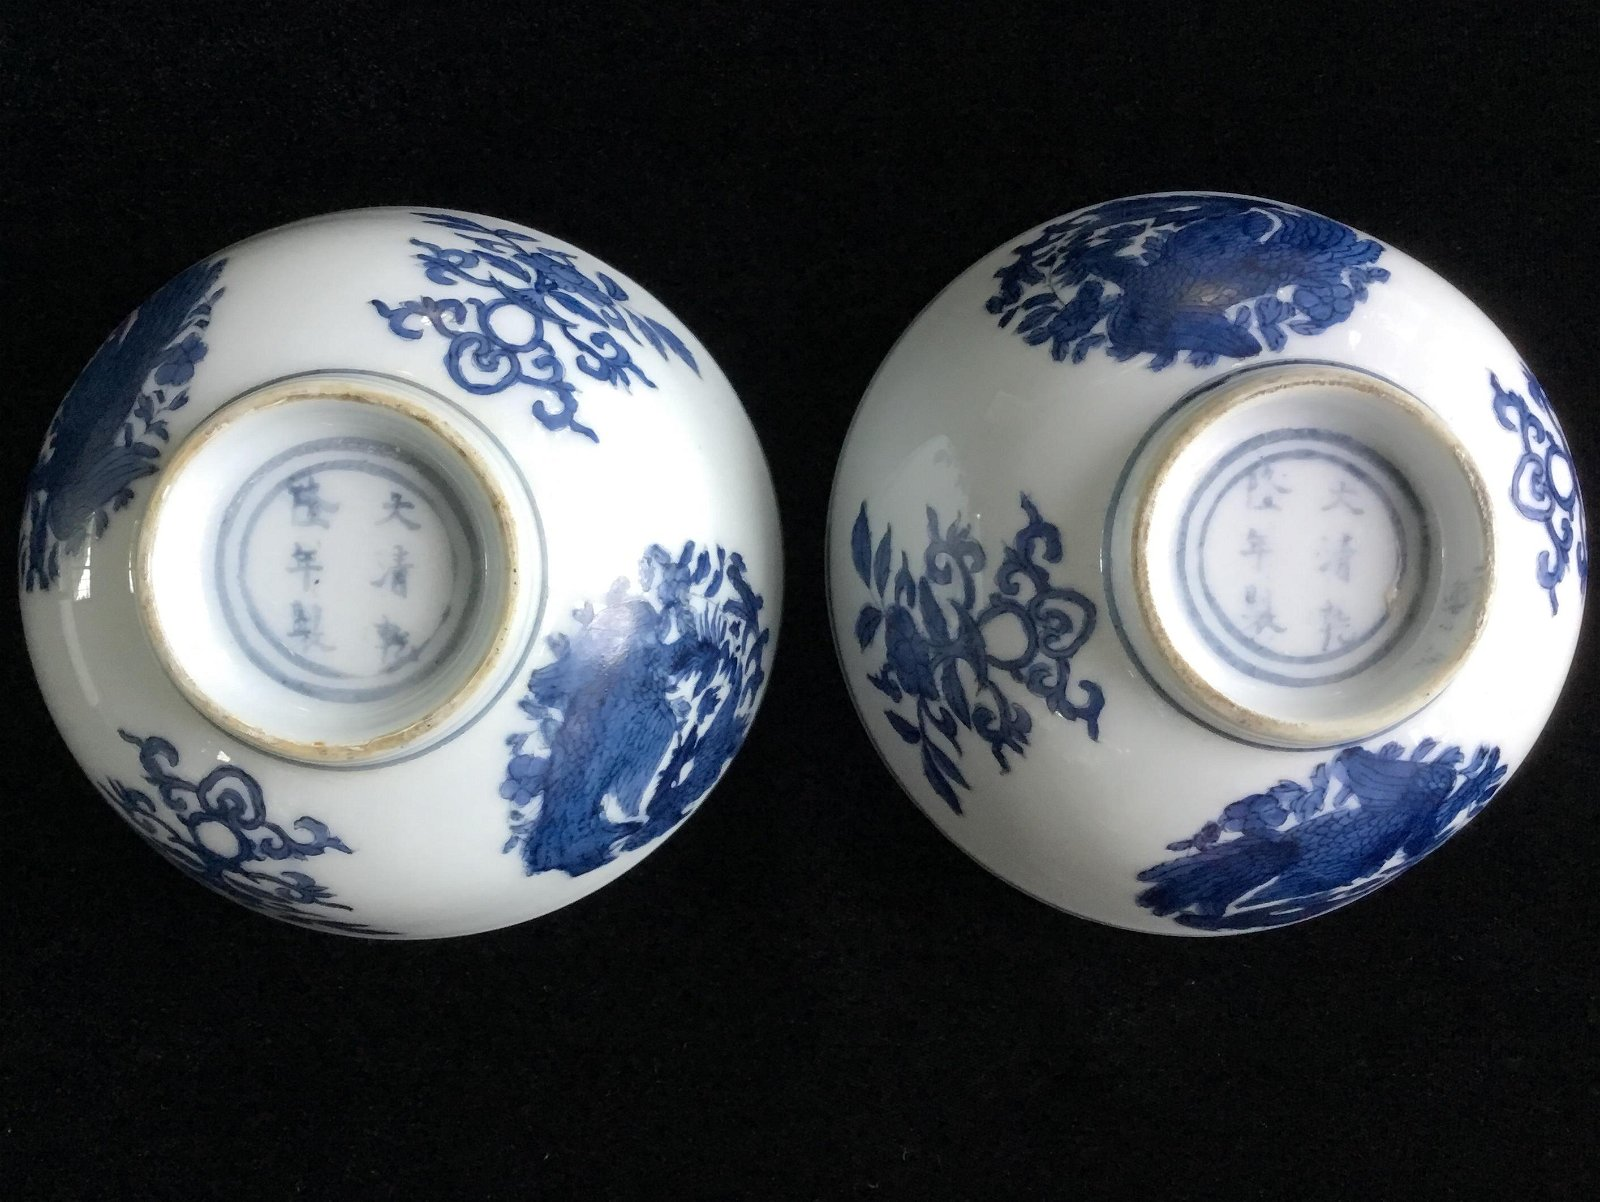 A PAIR OF CHINESE BLUE AND WHITE CERAMIC BOWLS